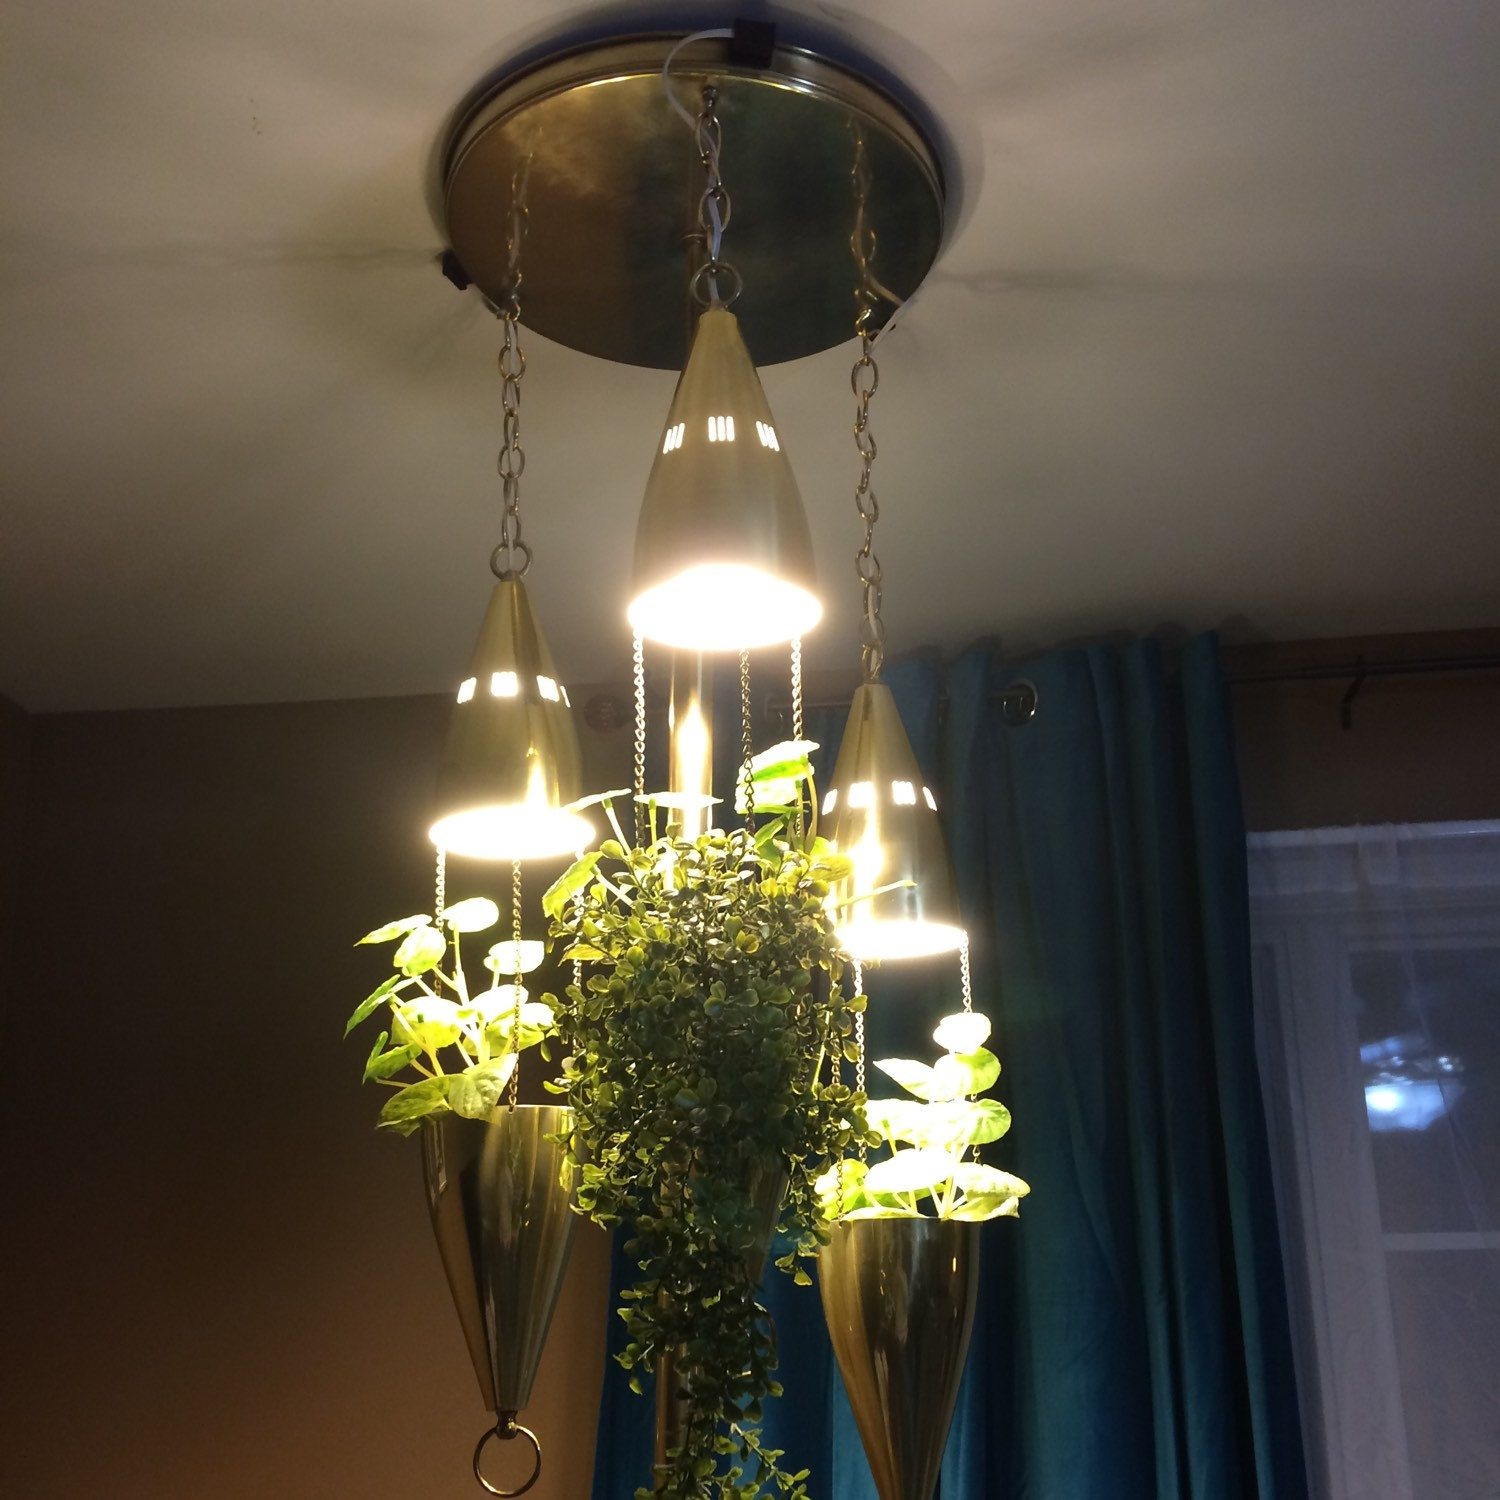 small resolution of the most amazing tension pole lamp you will ever see brass finish polished new wiring and sockets new switch hanging lights feature bullet planter and